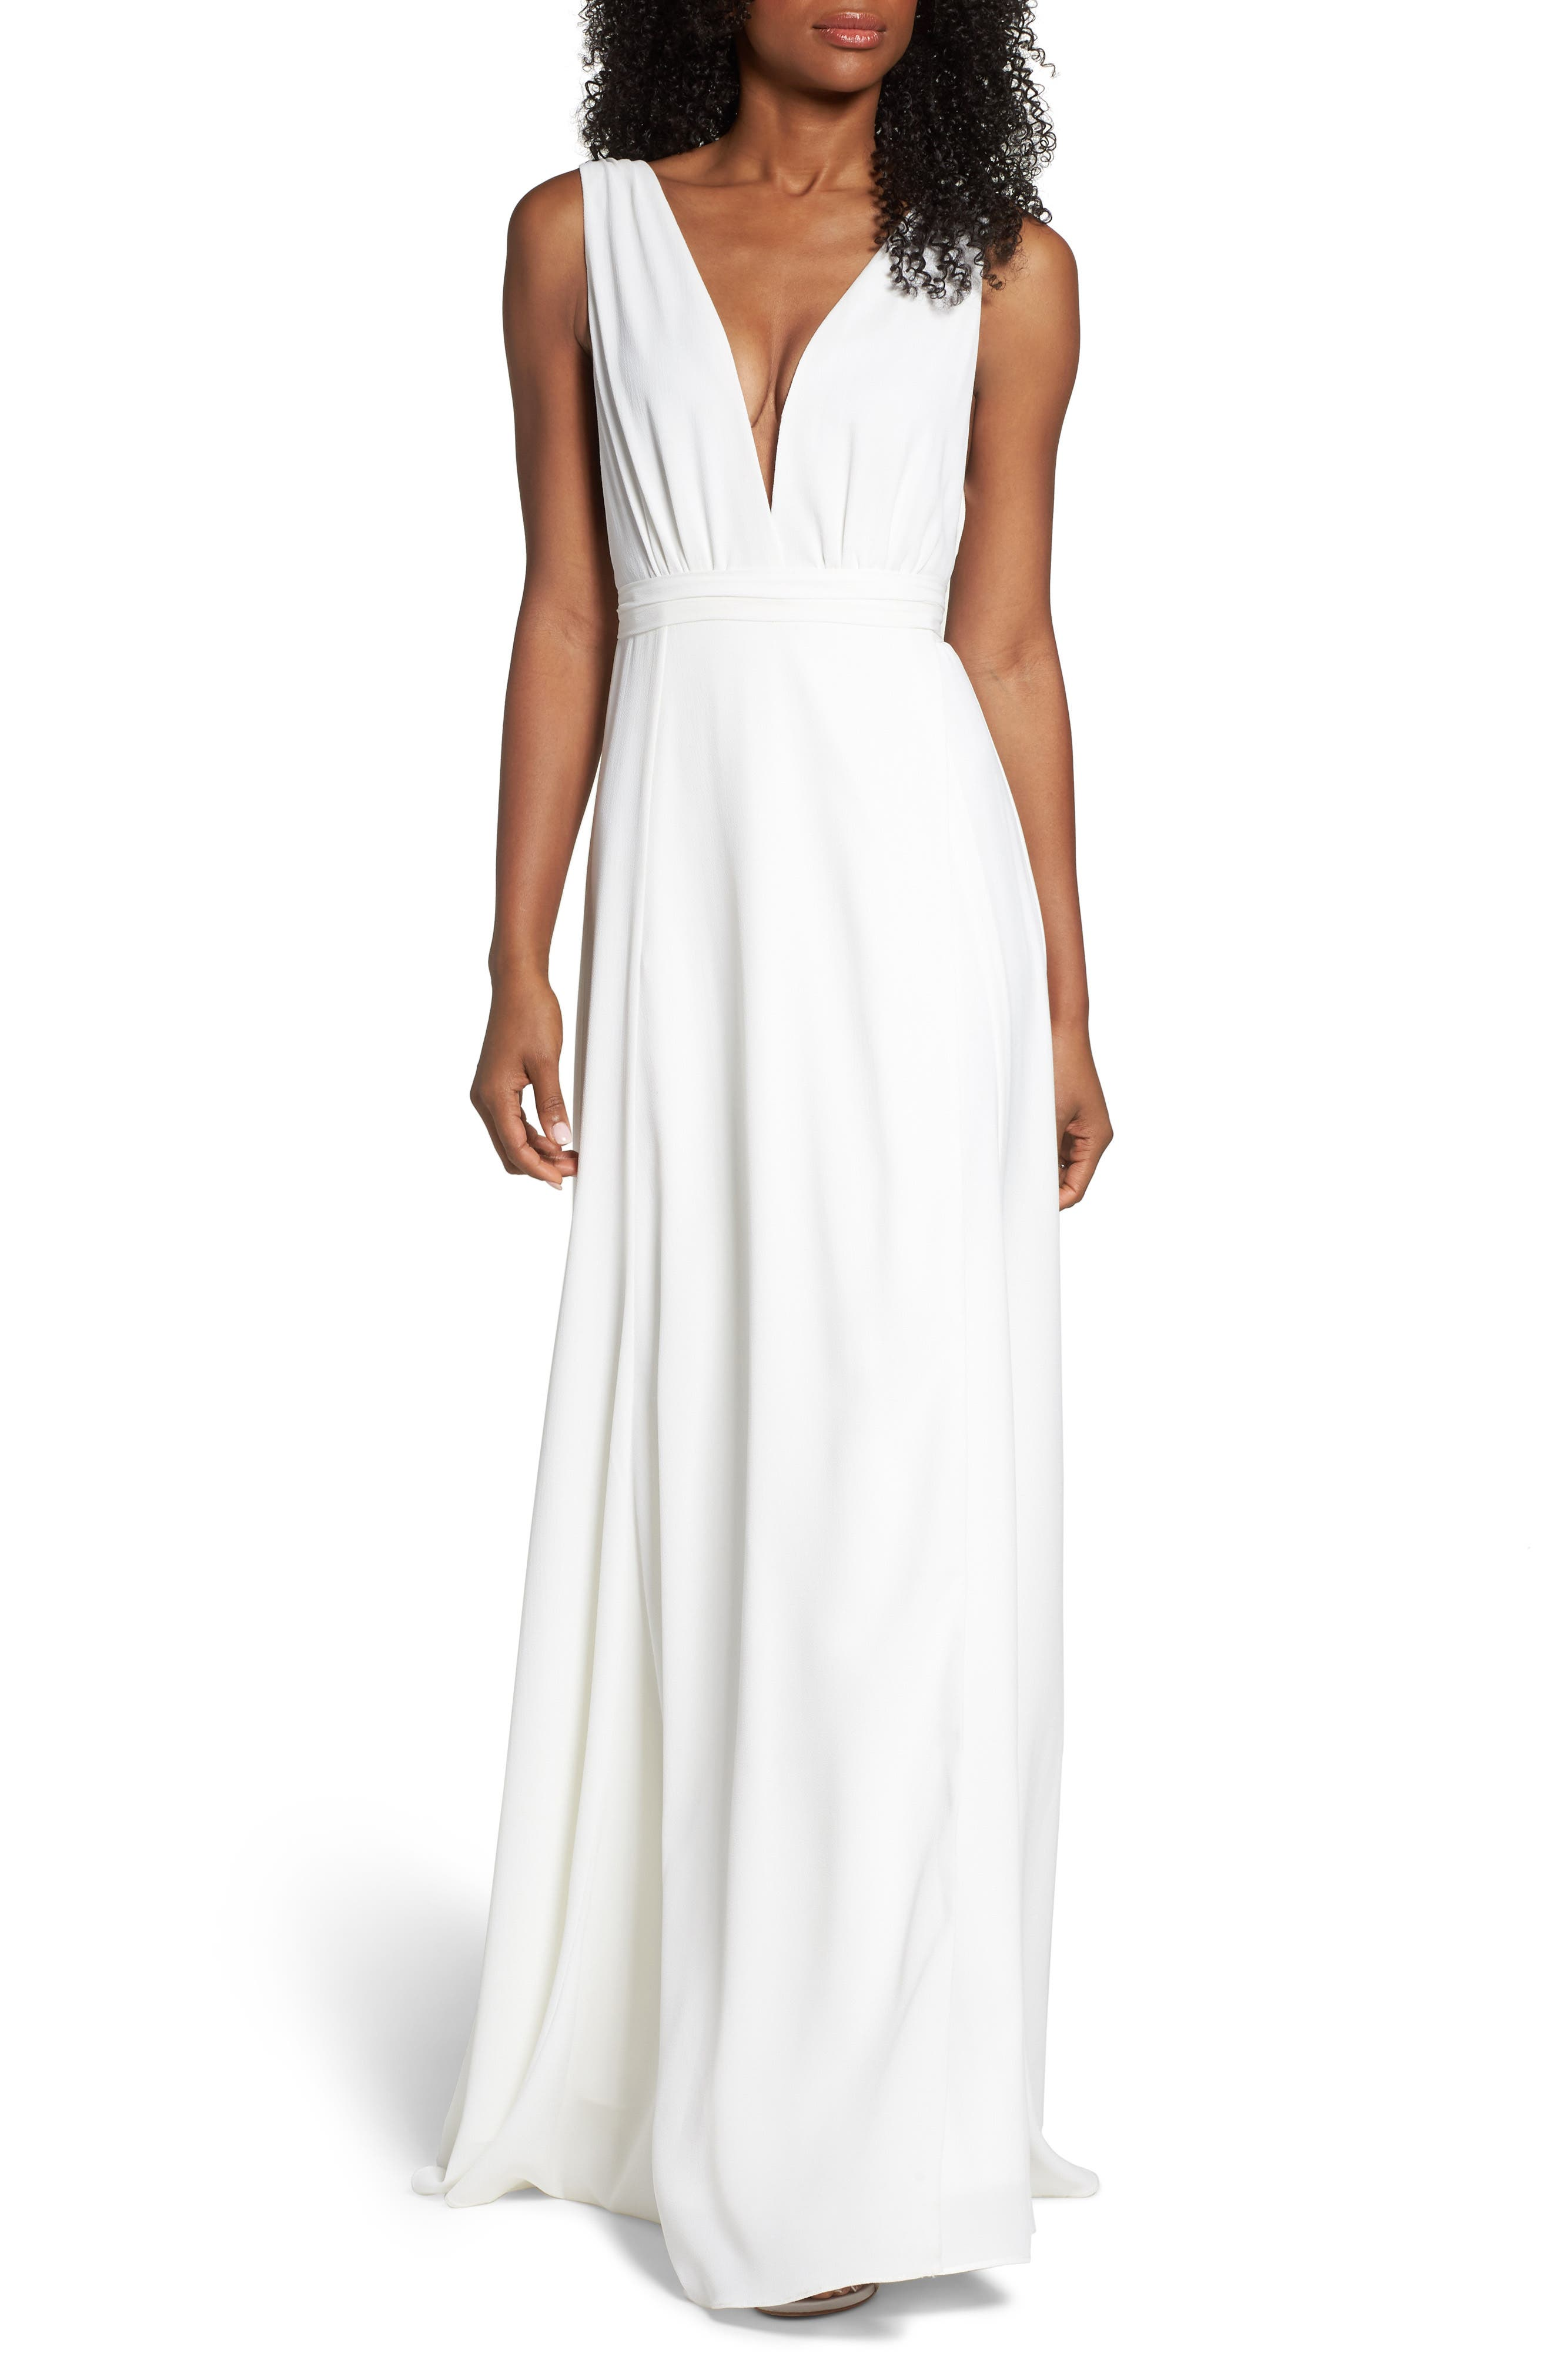 Jagger Plunging Wrap Dress,                             Main thumbnail 1, color,                             WHITE